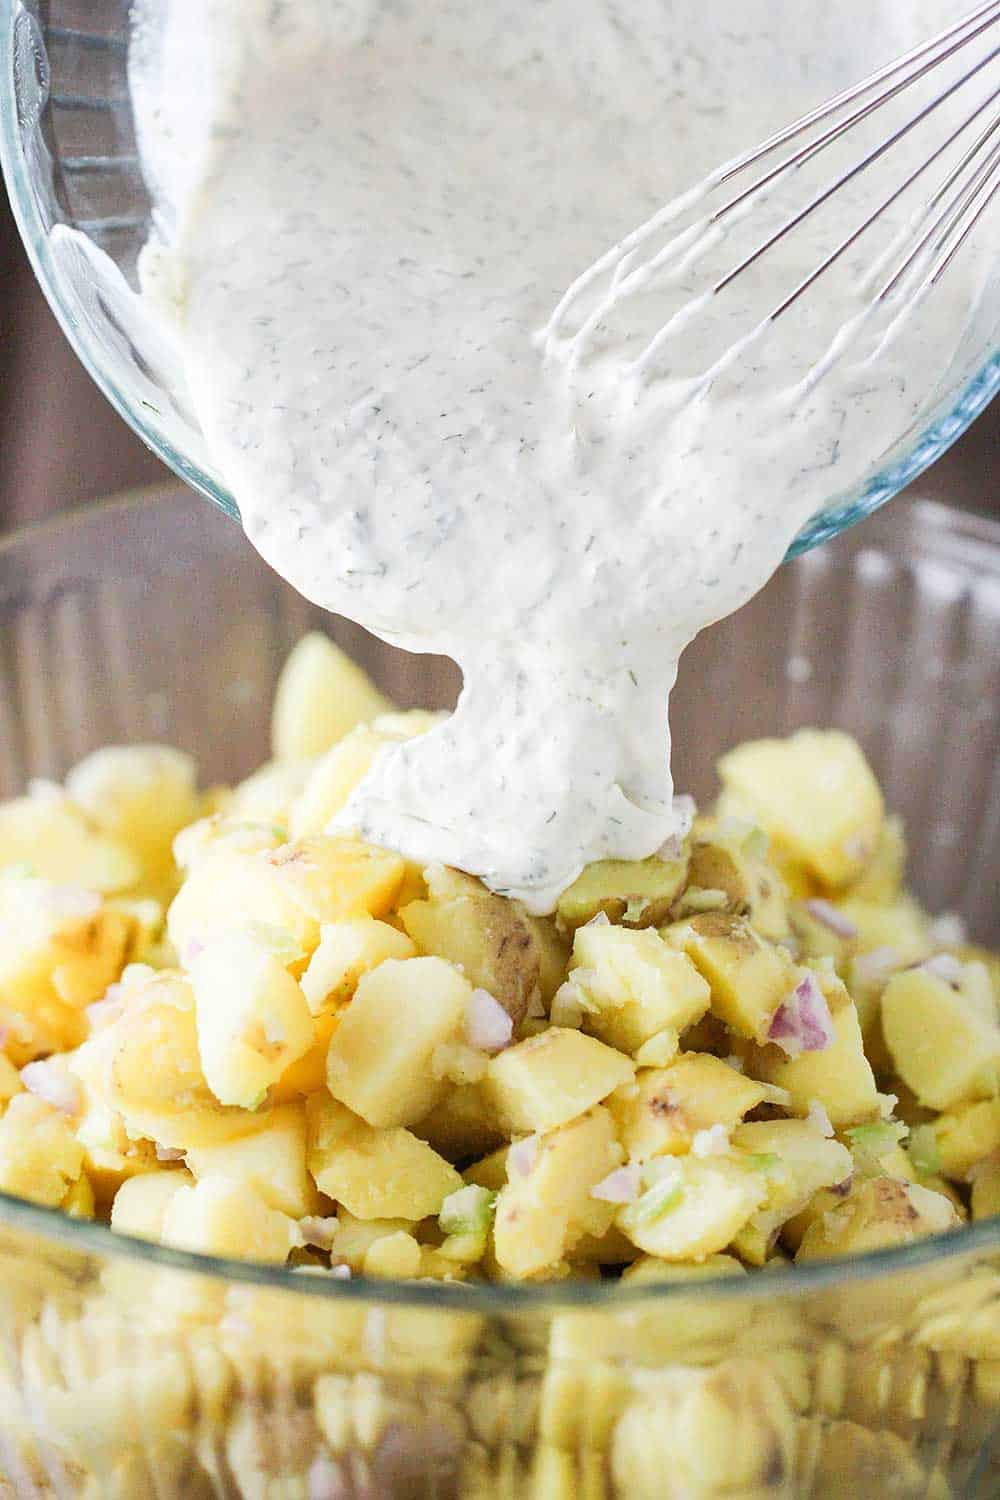 Dill and dijon dressing being pour onto cooked potatoes for potato salad.